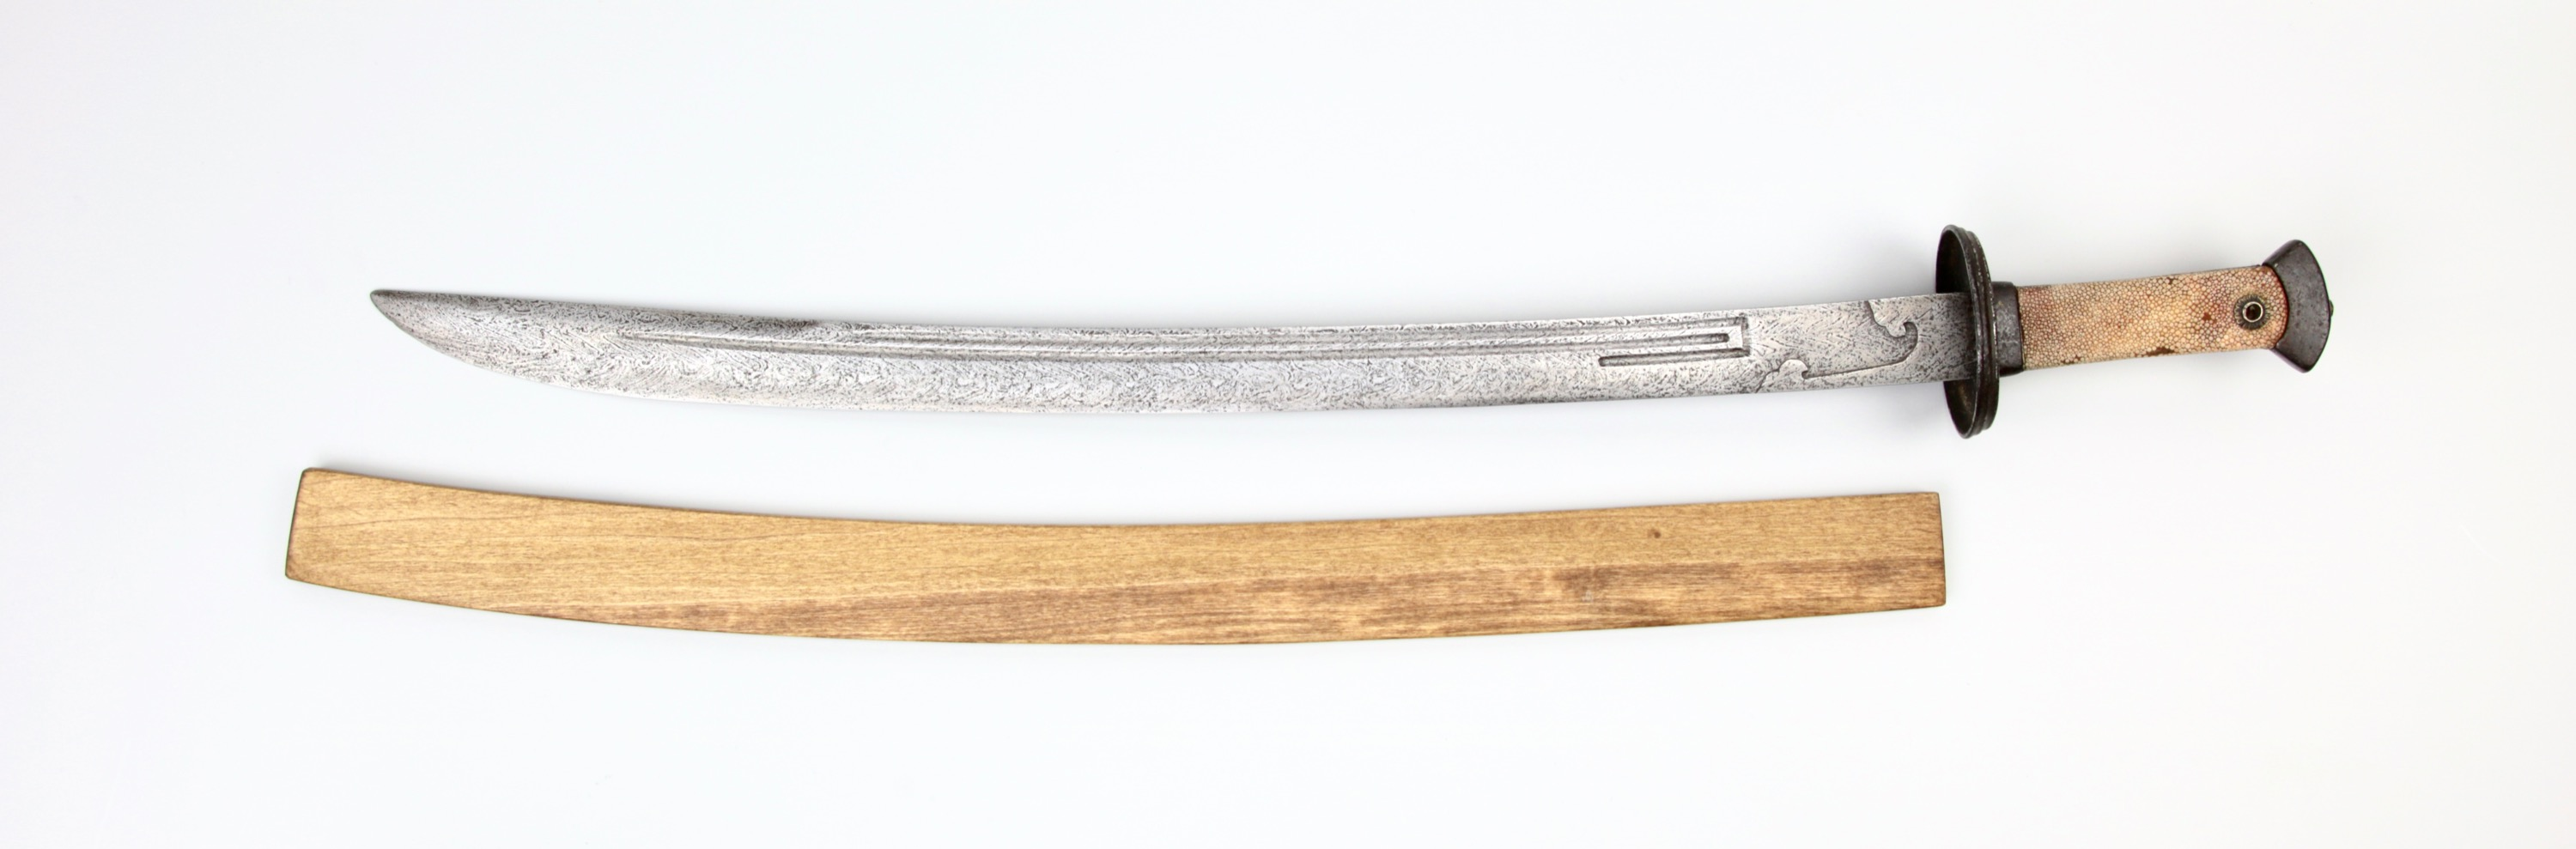 Ray-skin covered hilt and wooden scabbard